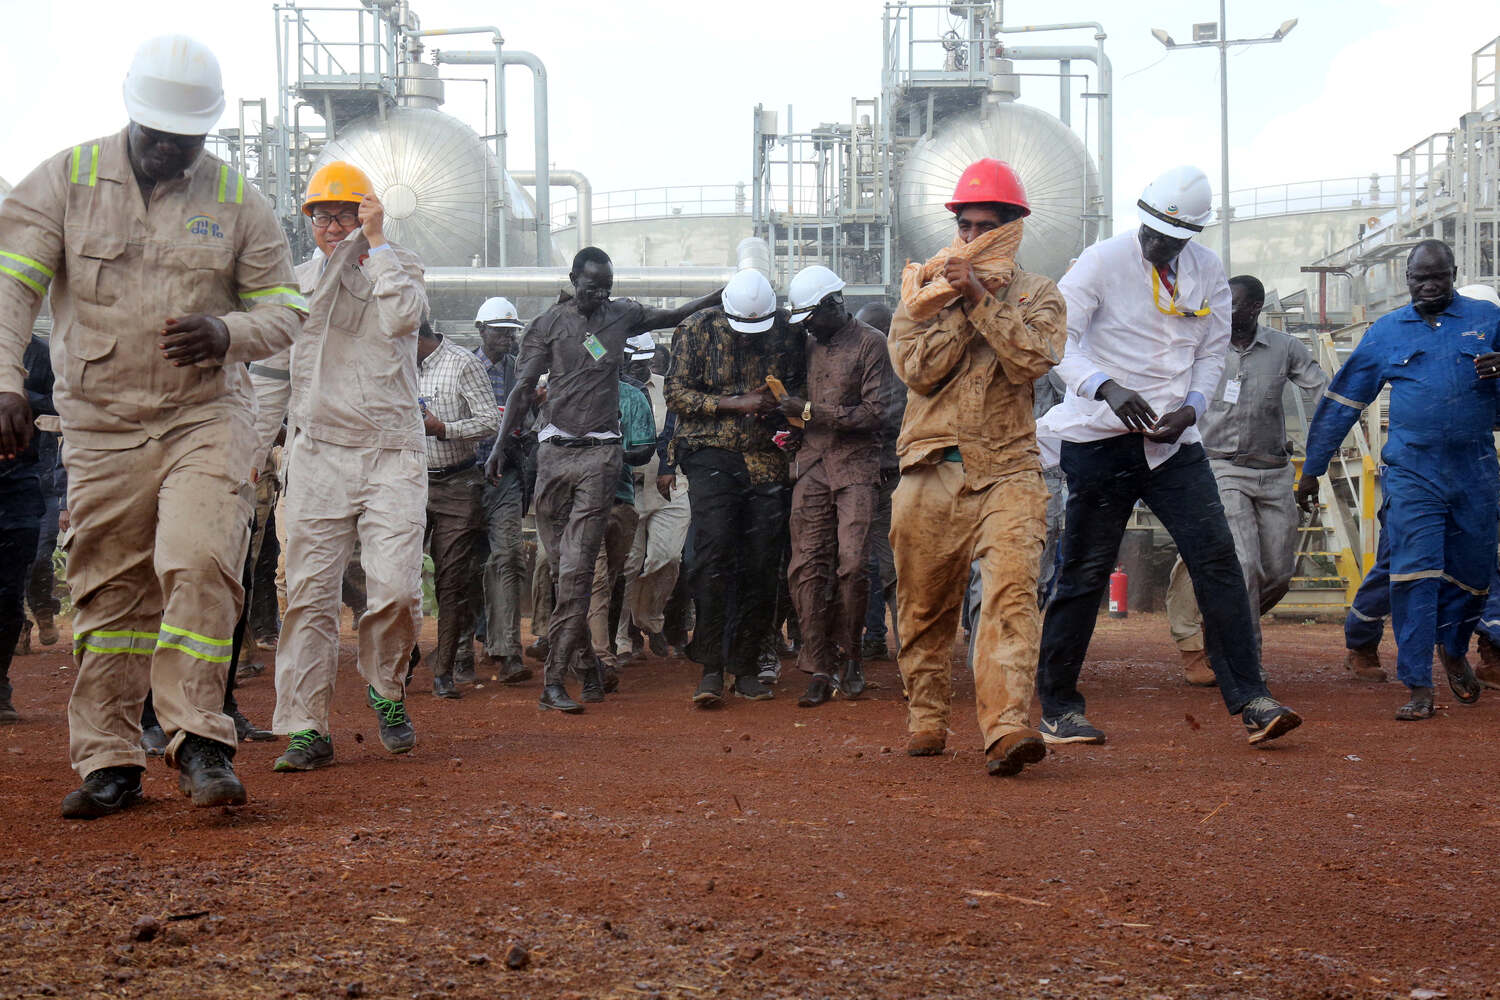 South Sudan's former Minister of Petroleum, Ezekiel Lol Gatkuoth, visits the Al-Nar oil fields north of Bentiu, South Sudan, in April 2019